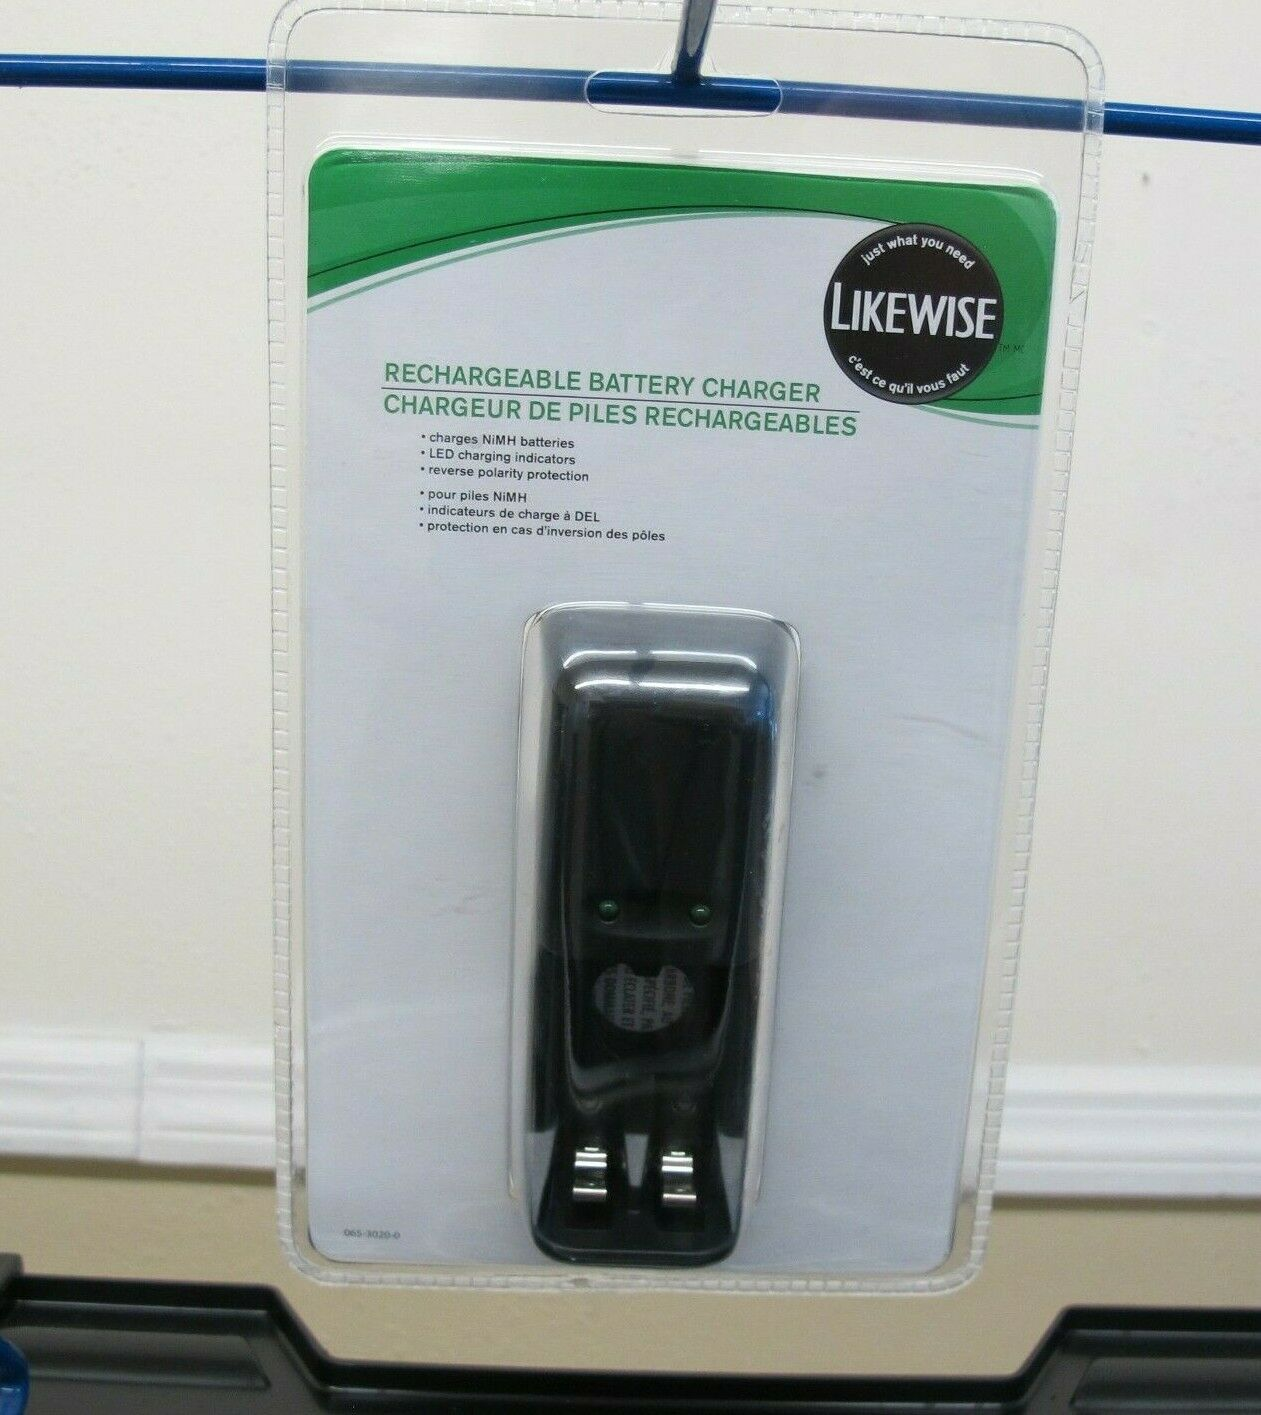 Rechargeable Battery Charger - New